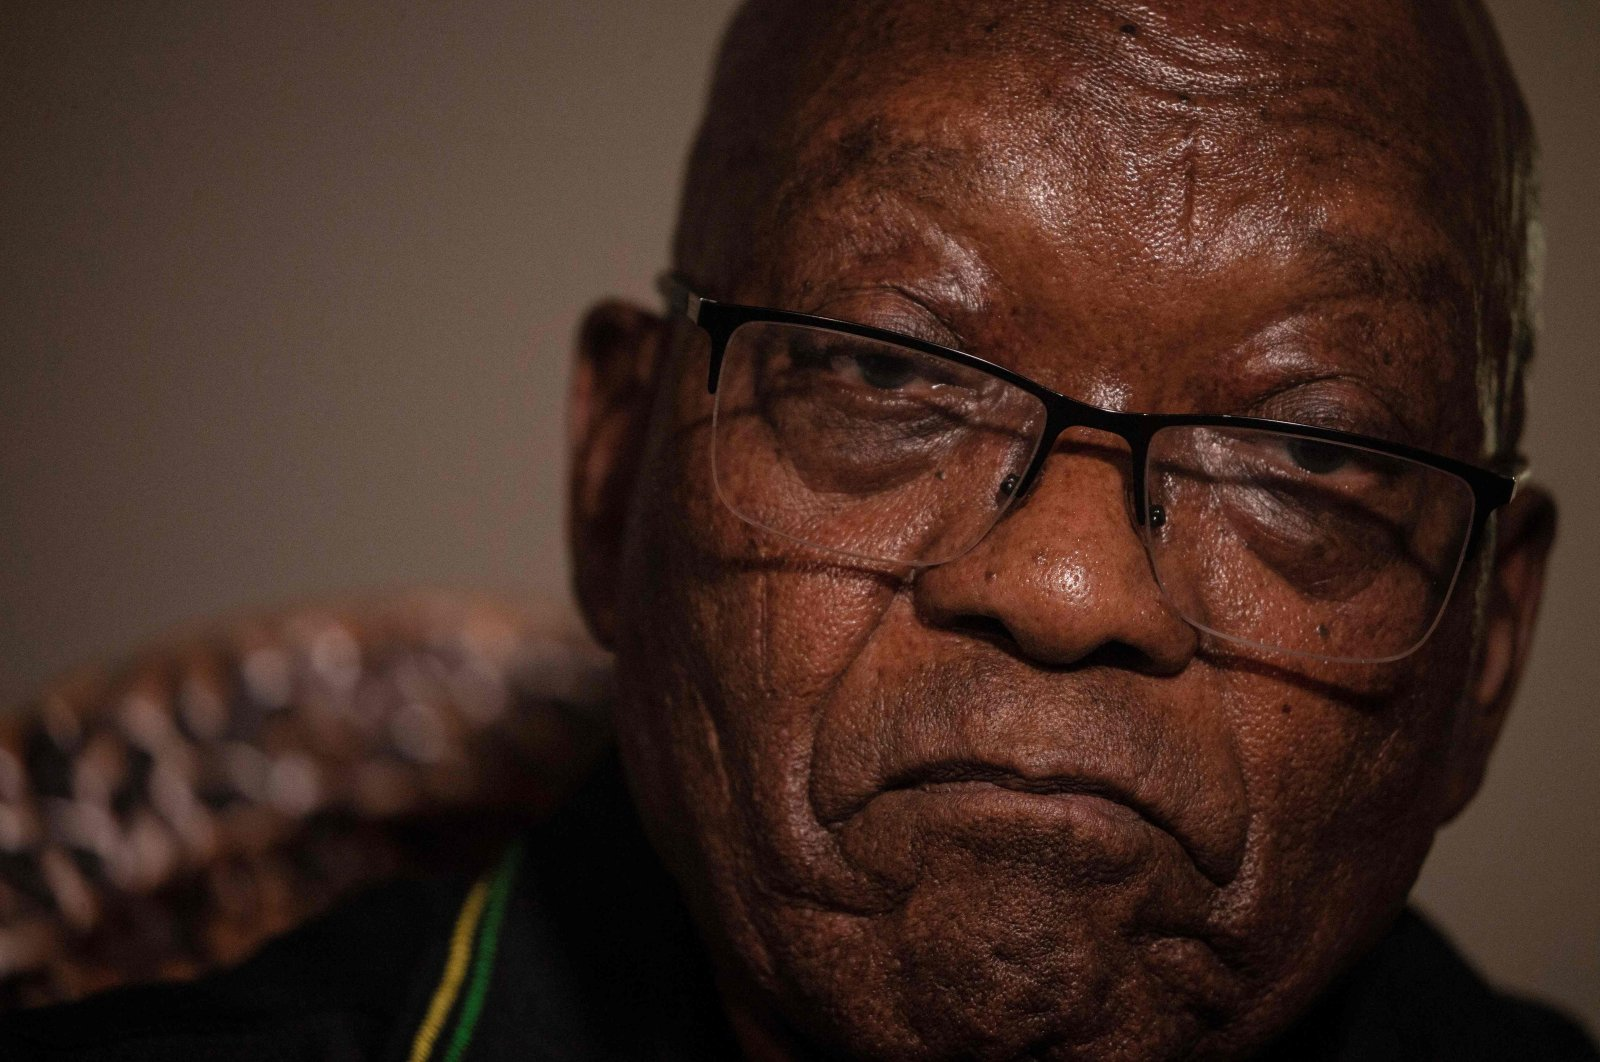 Former South African President Jacob Zuma addresses the media in his home in Nkandla, KwaZulu-Natal, South Africa, July 4, 2021. (AFP Photo)